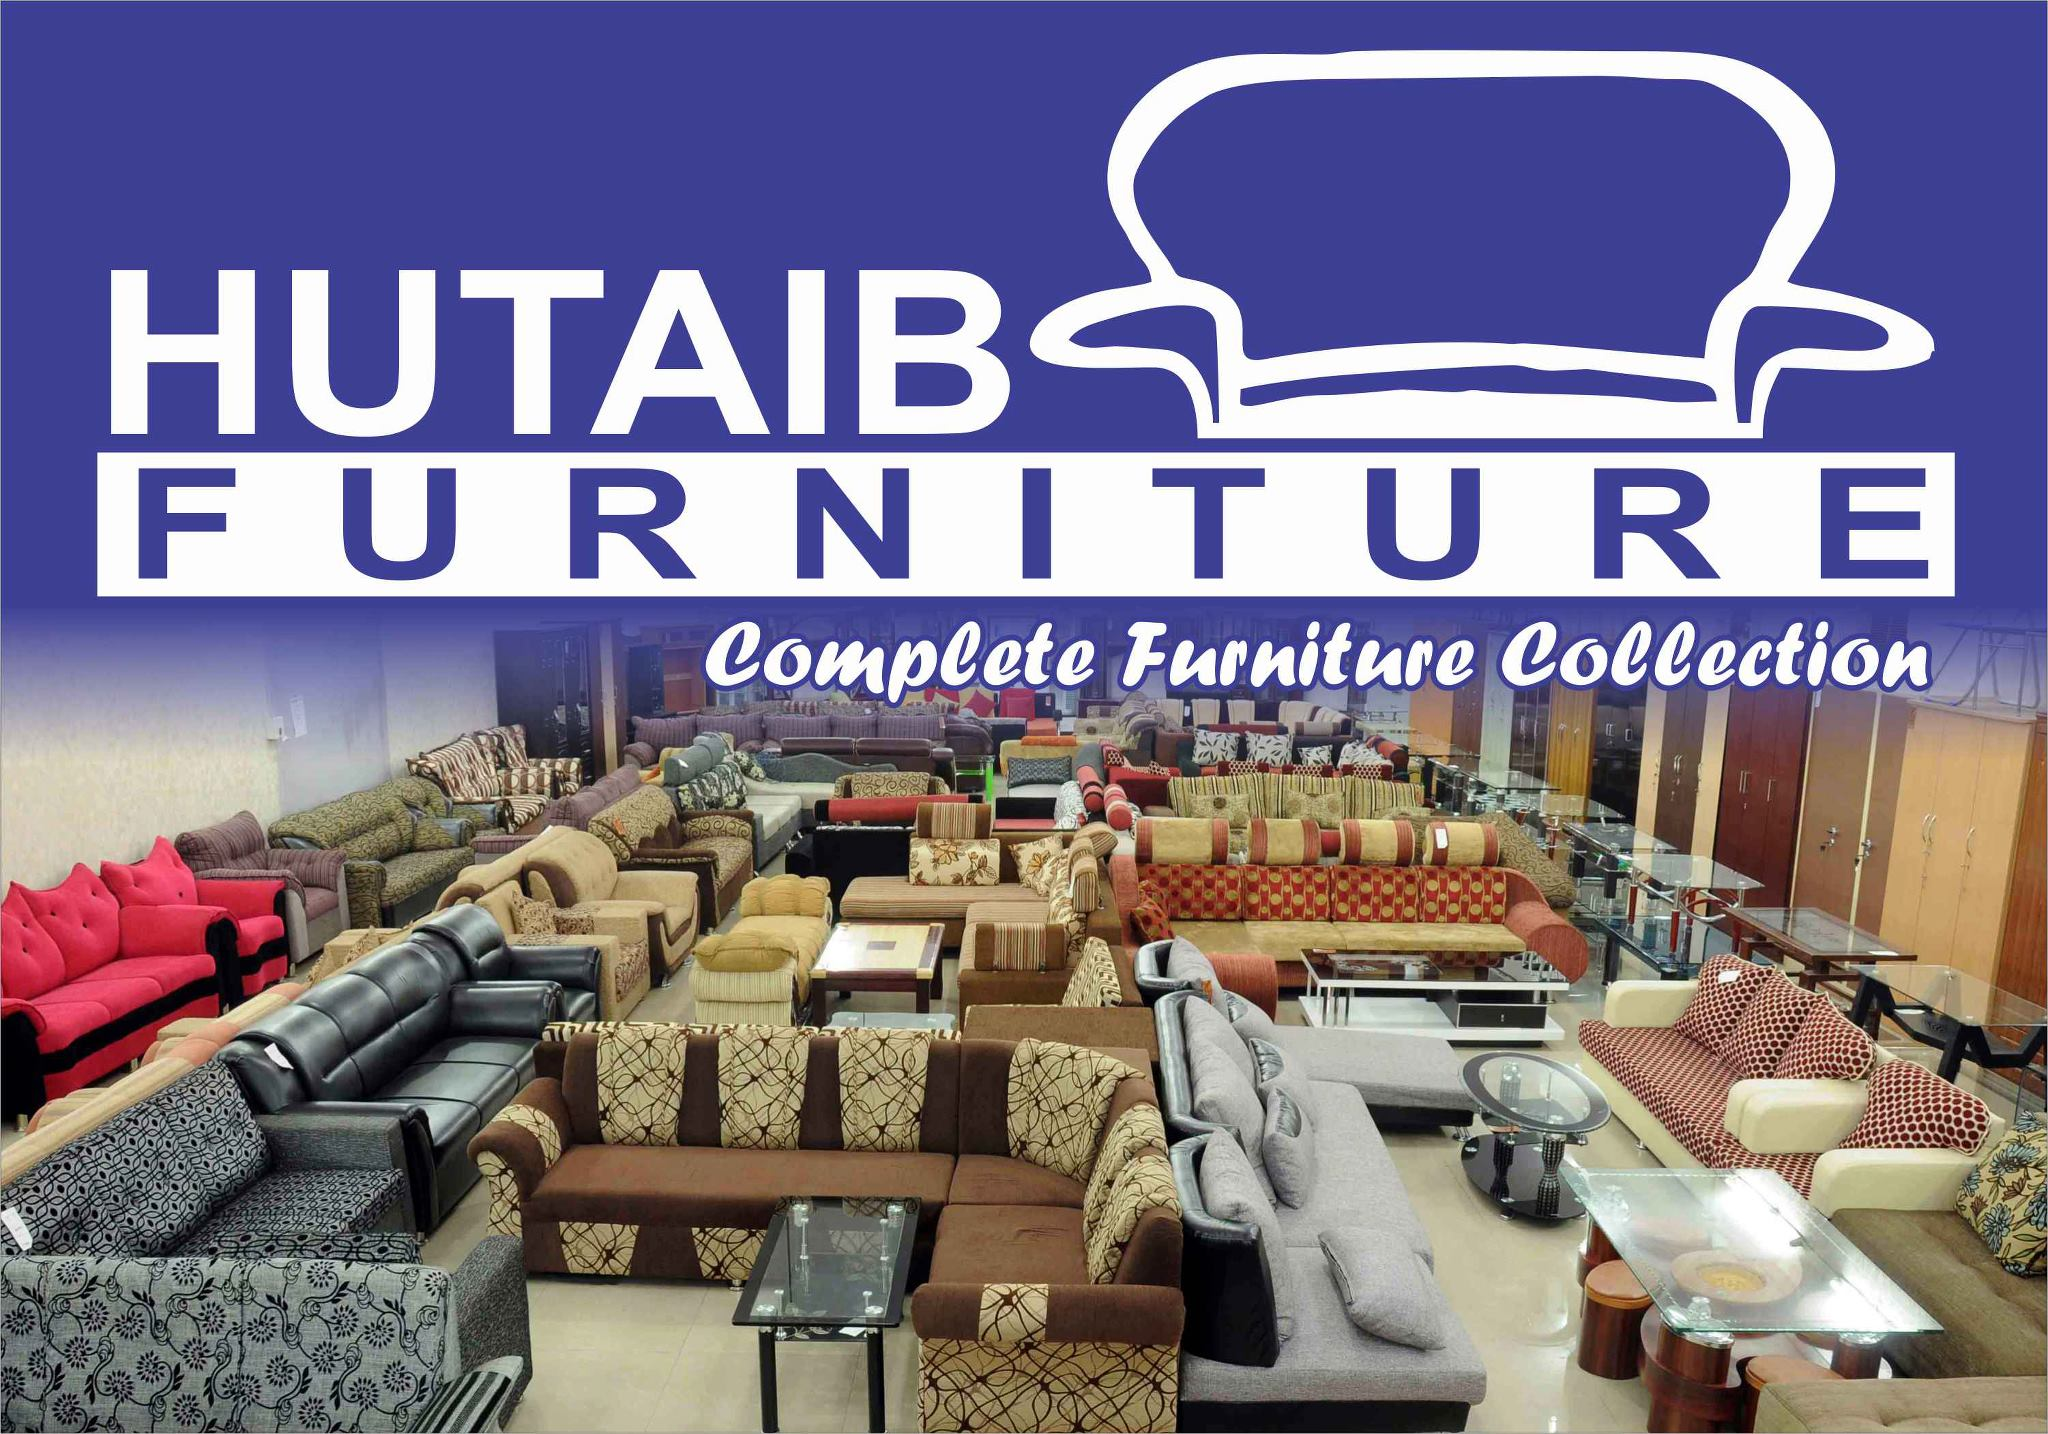 revolving chair india slip covers hutaib furniture in indore ,hutaib furniure is fastest growing professionally managed company ...